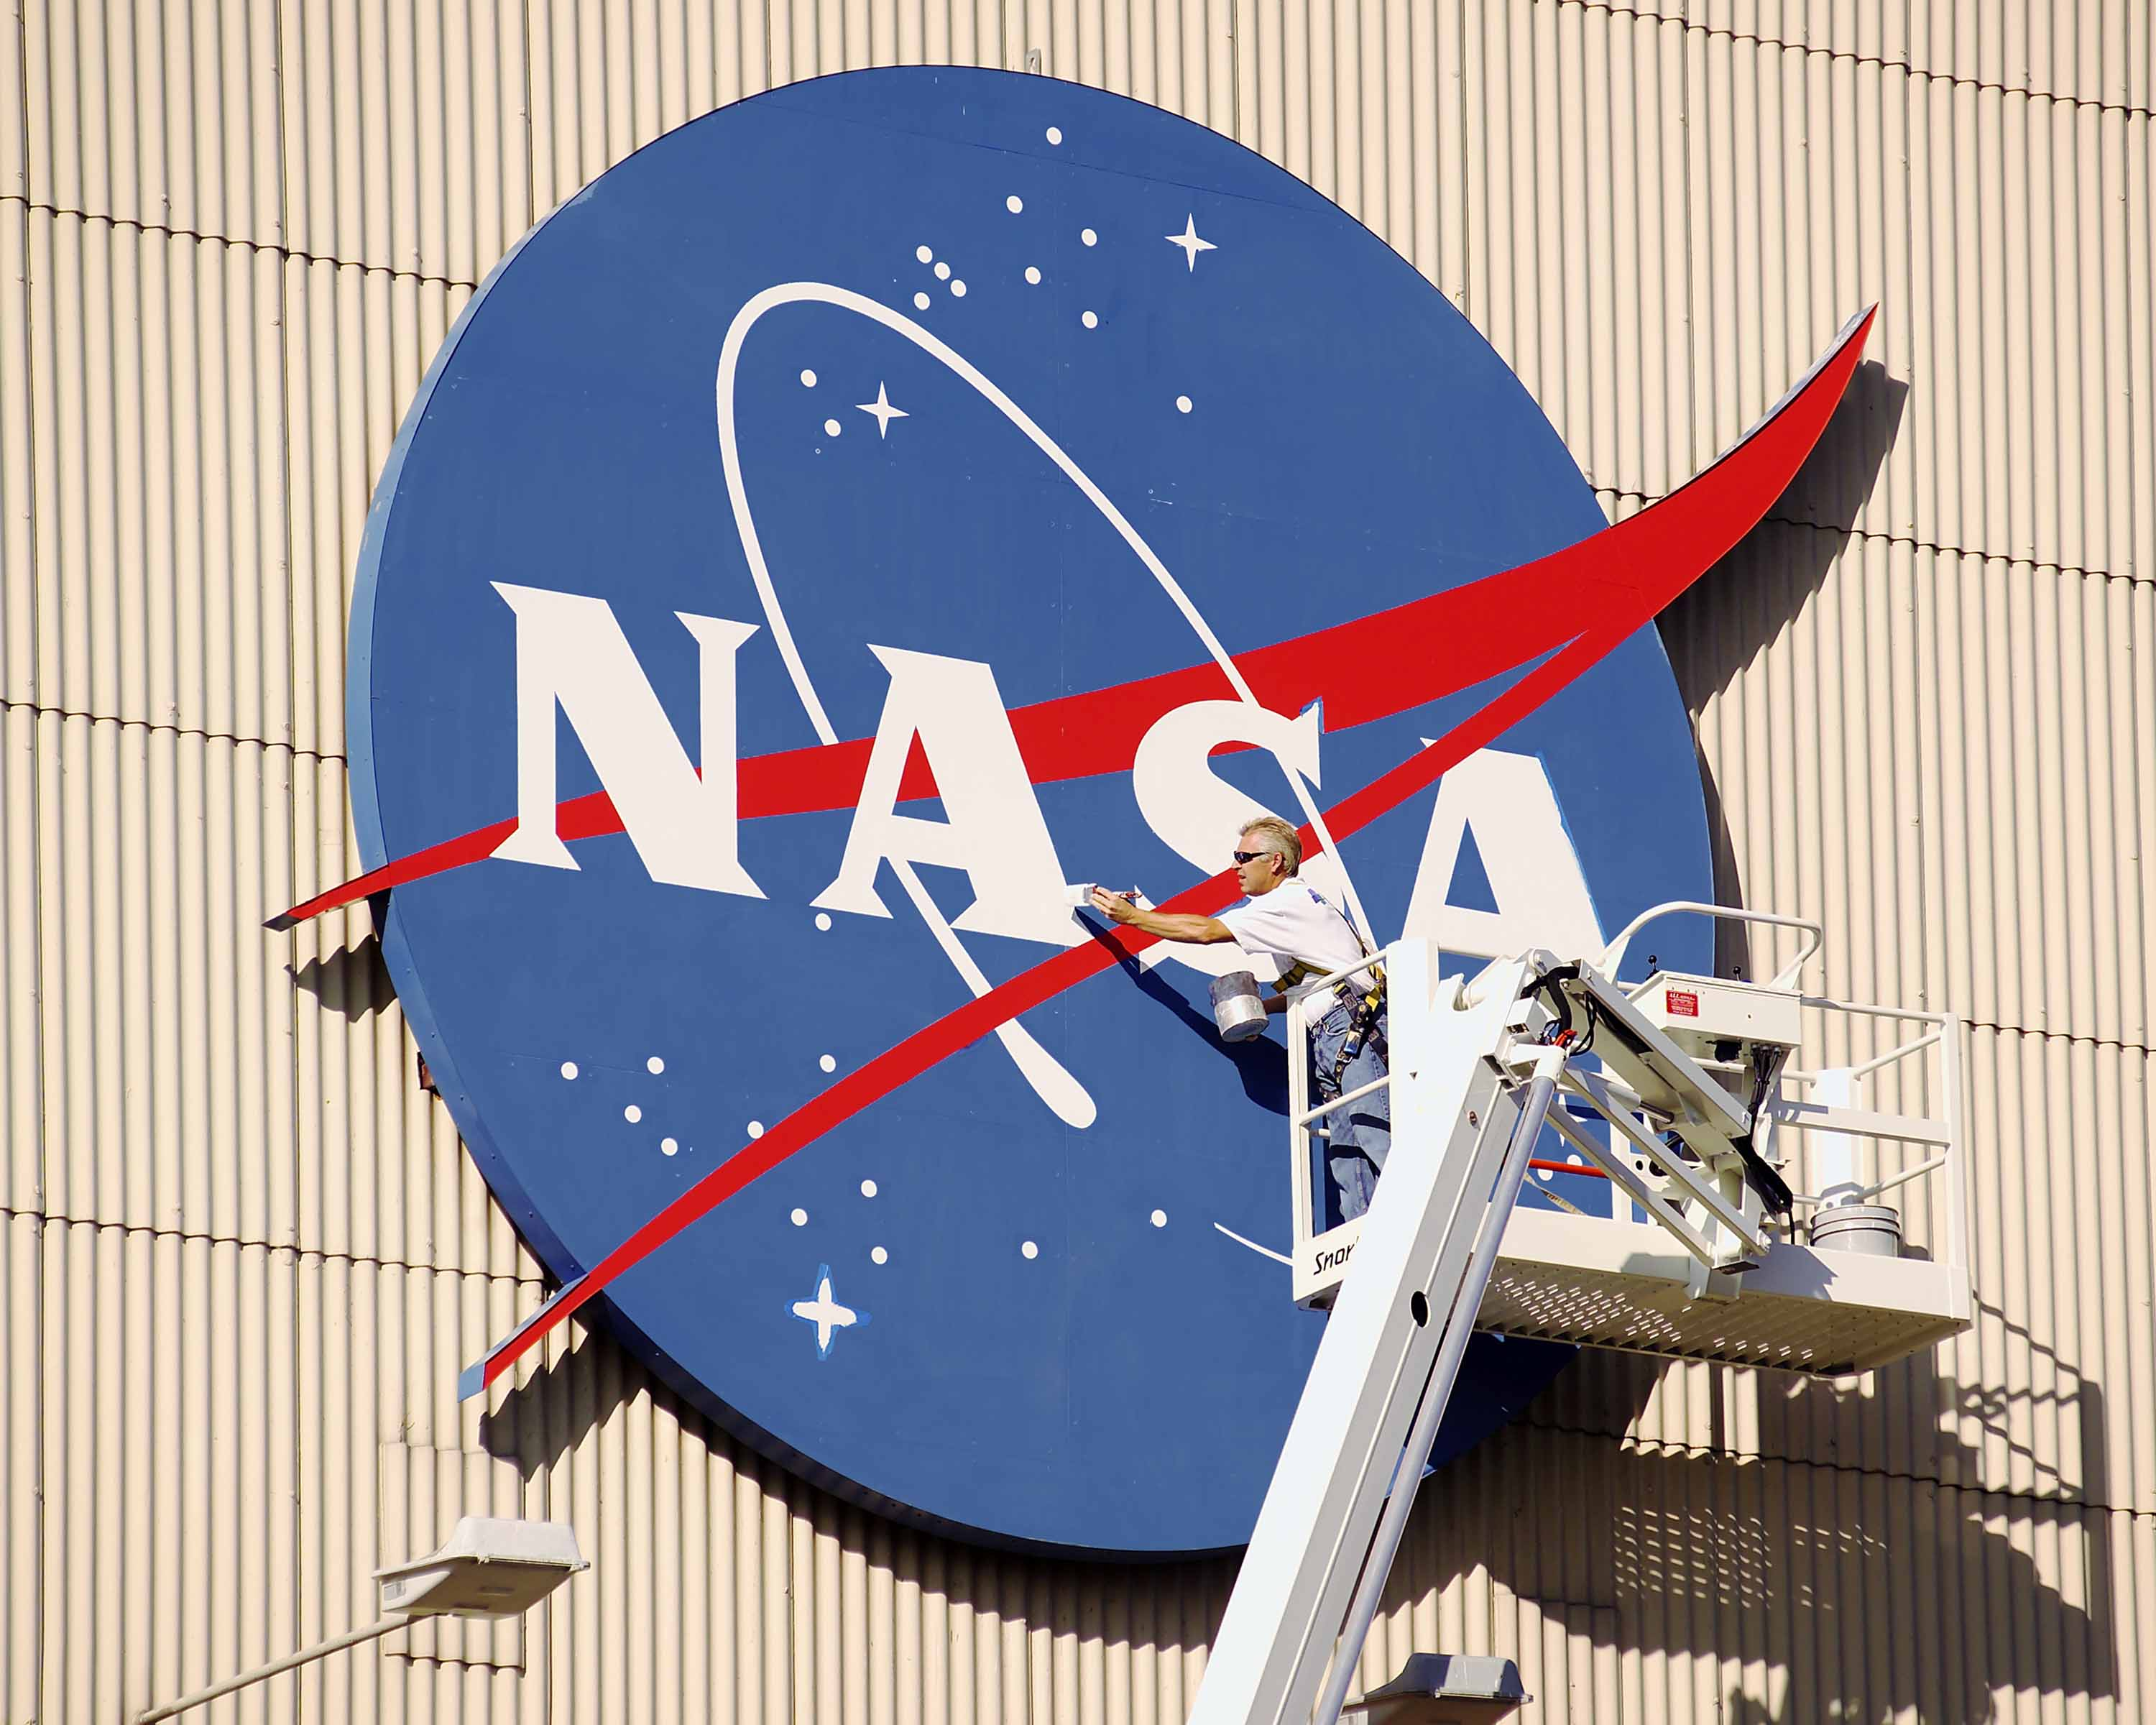 image about Printable Nasa Logo identify Symbols of NASA NASA